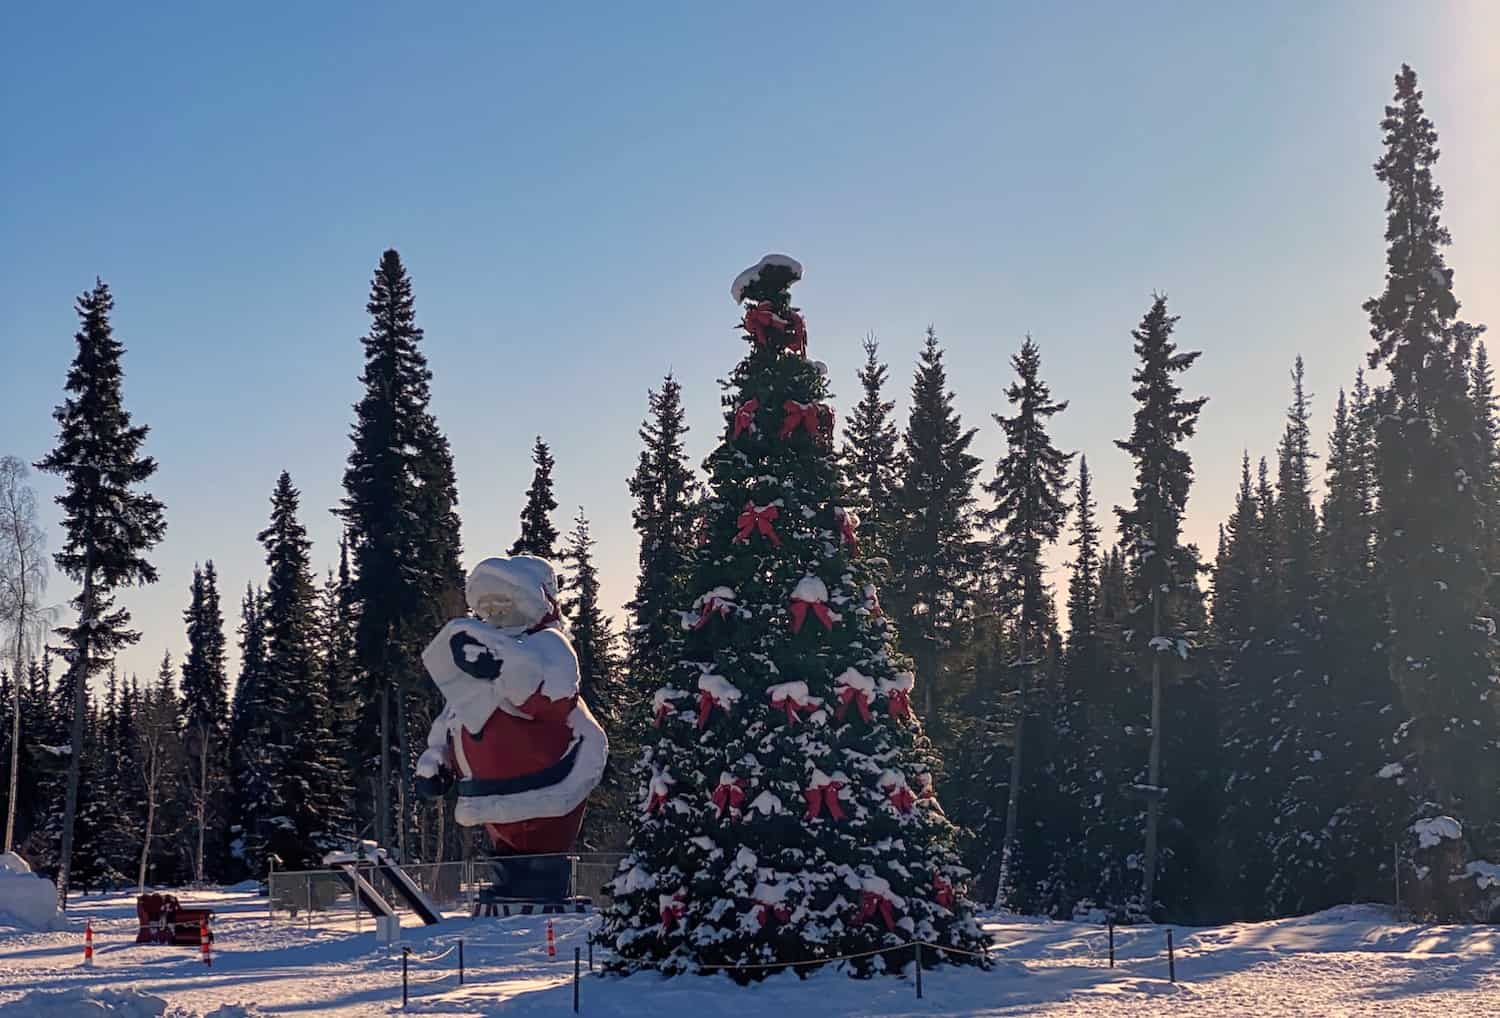 Fairbanks - North Pole